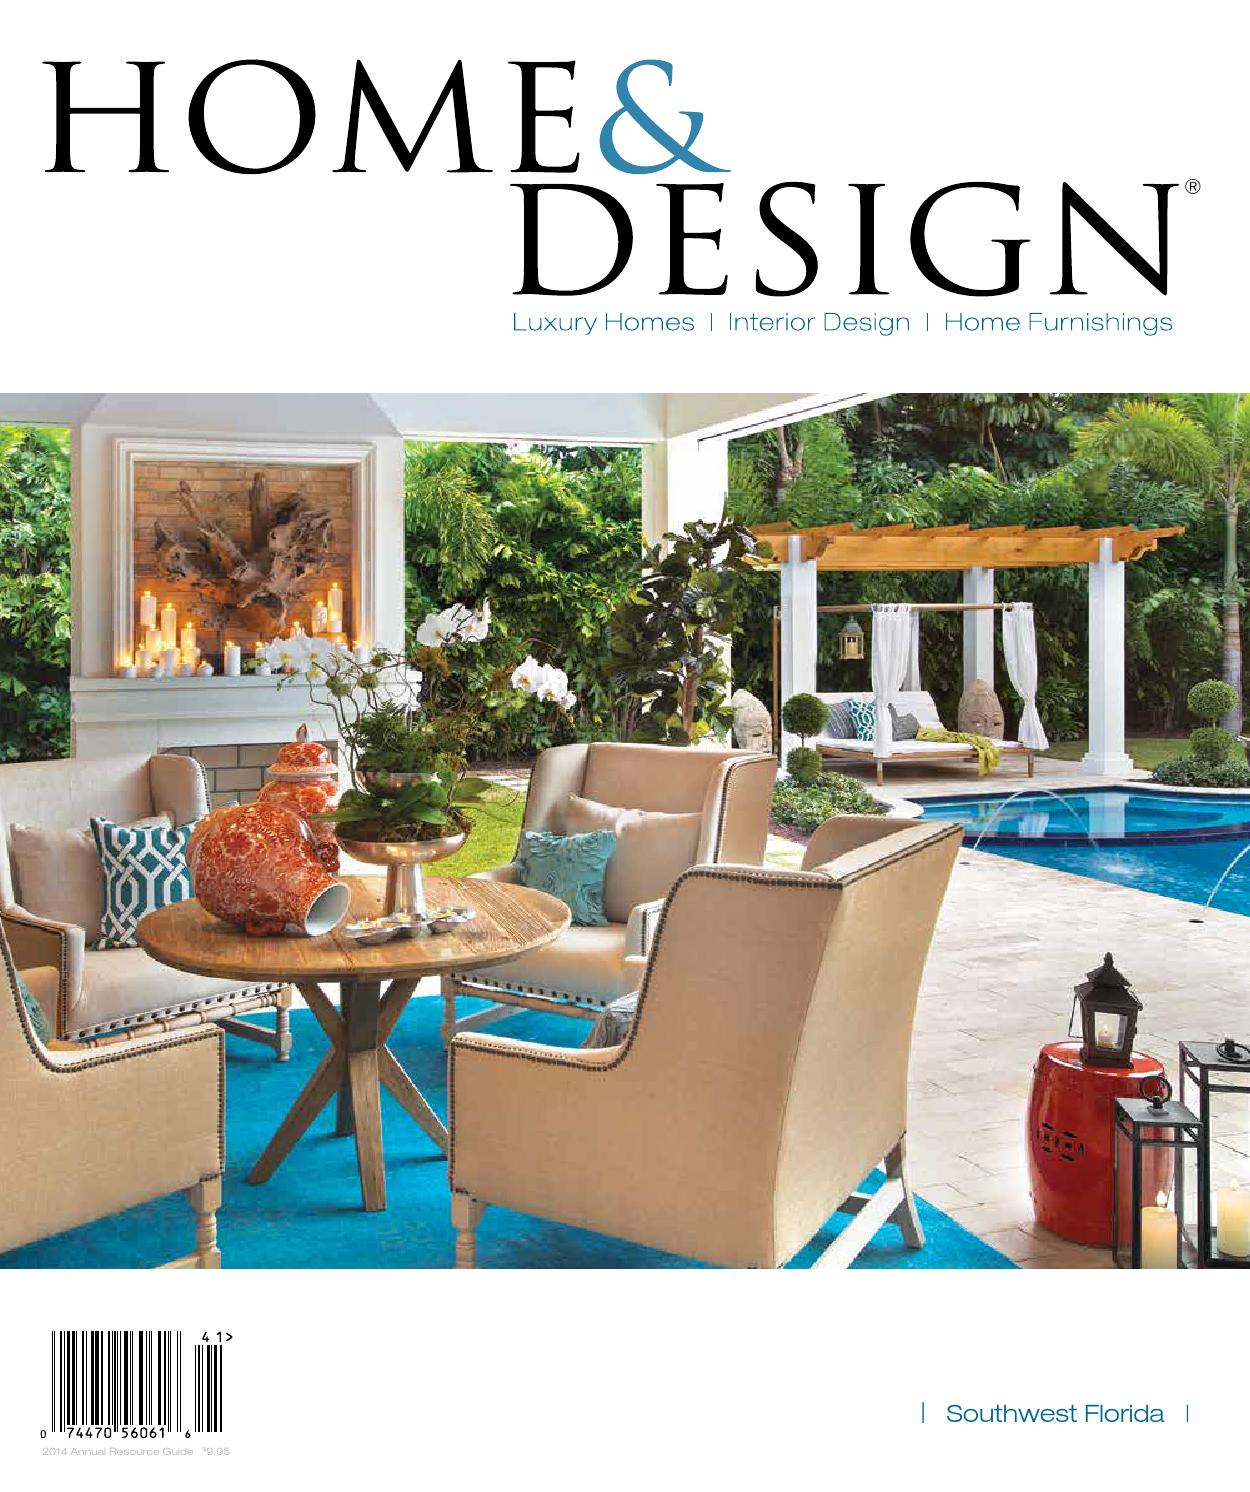 Home Design Magazine Annual Resource Guide 2014 Southwest Florida Edition By Anthony Spano